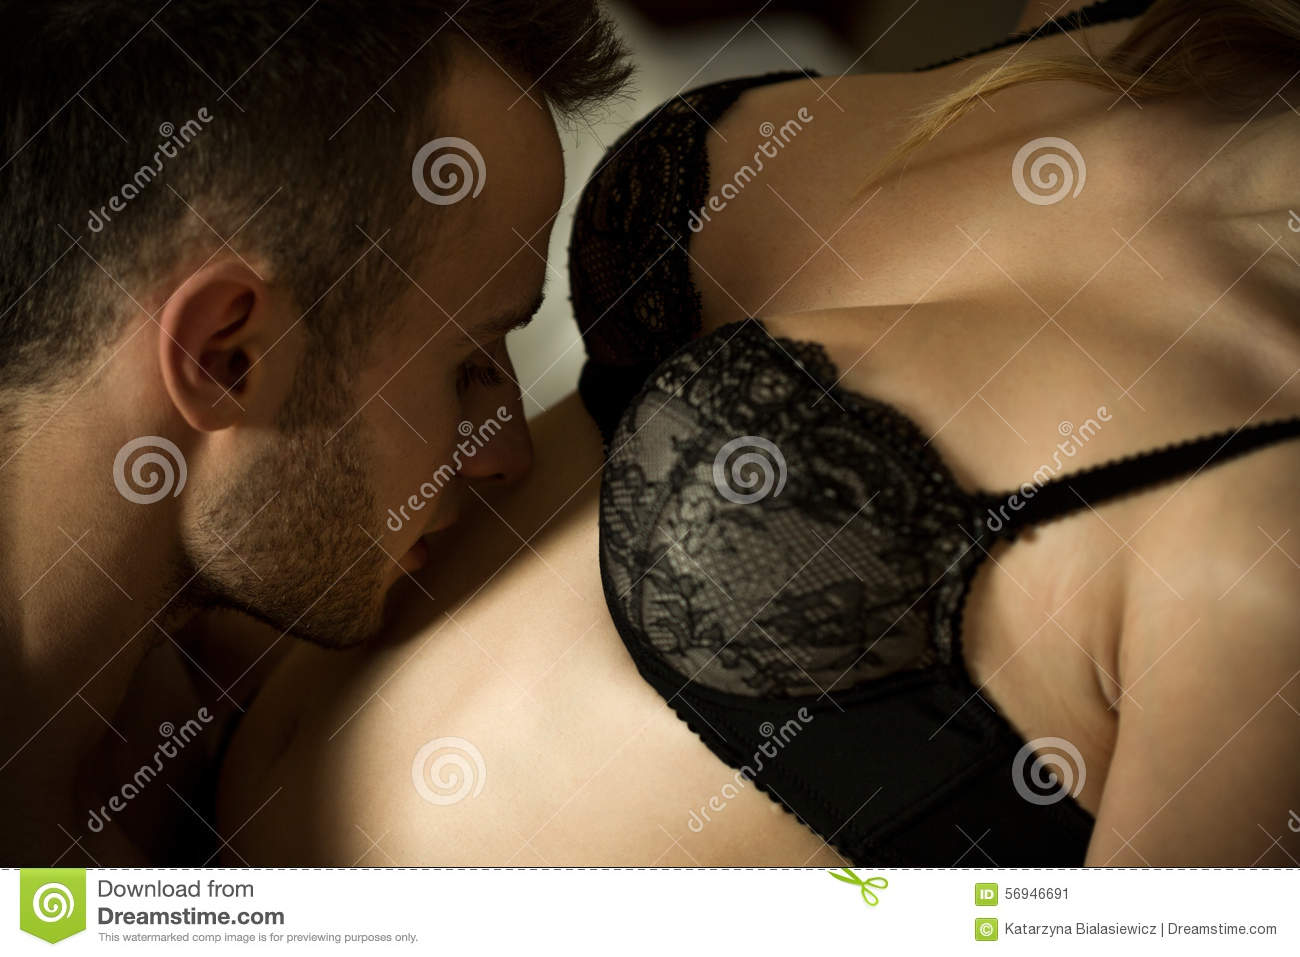 Romantic sex of male and female woman